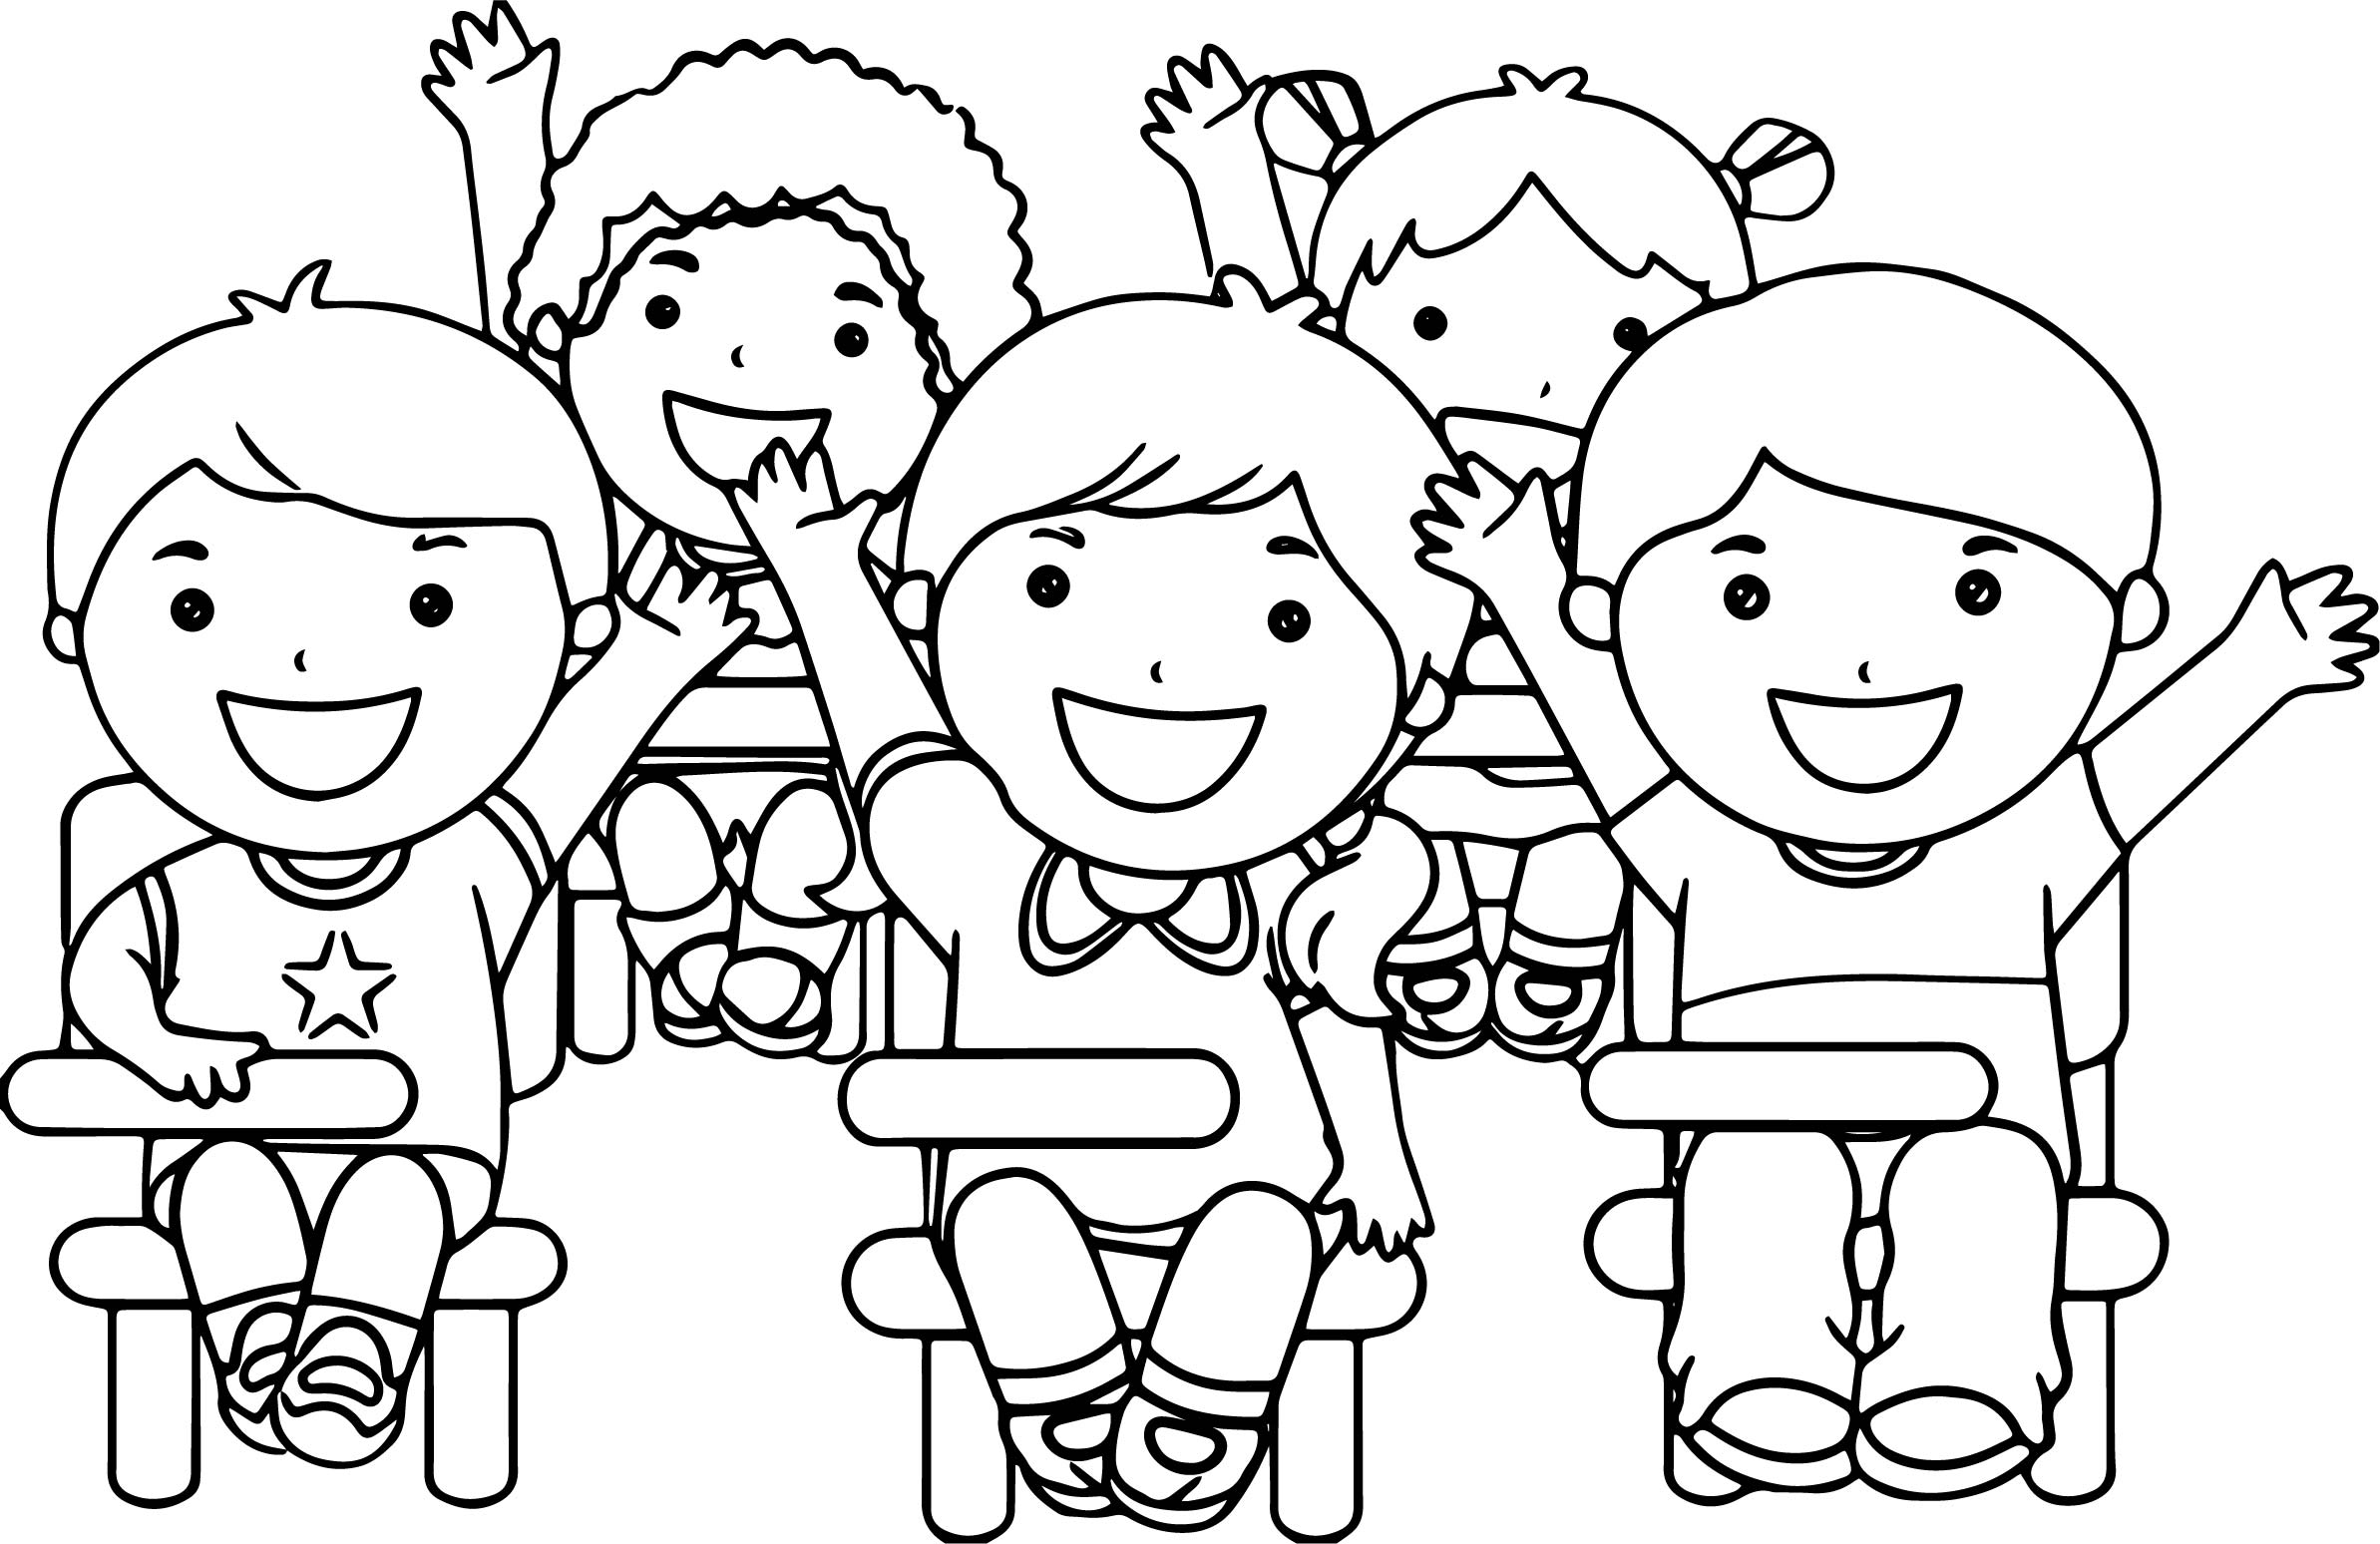 at the school children coloring page - Child Coloring Pages